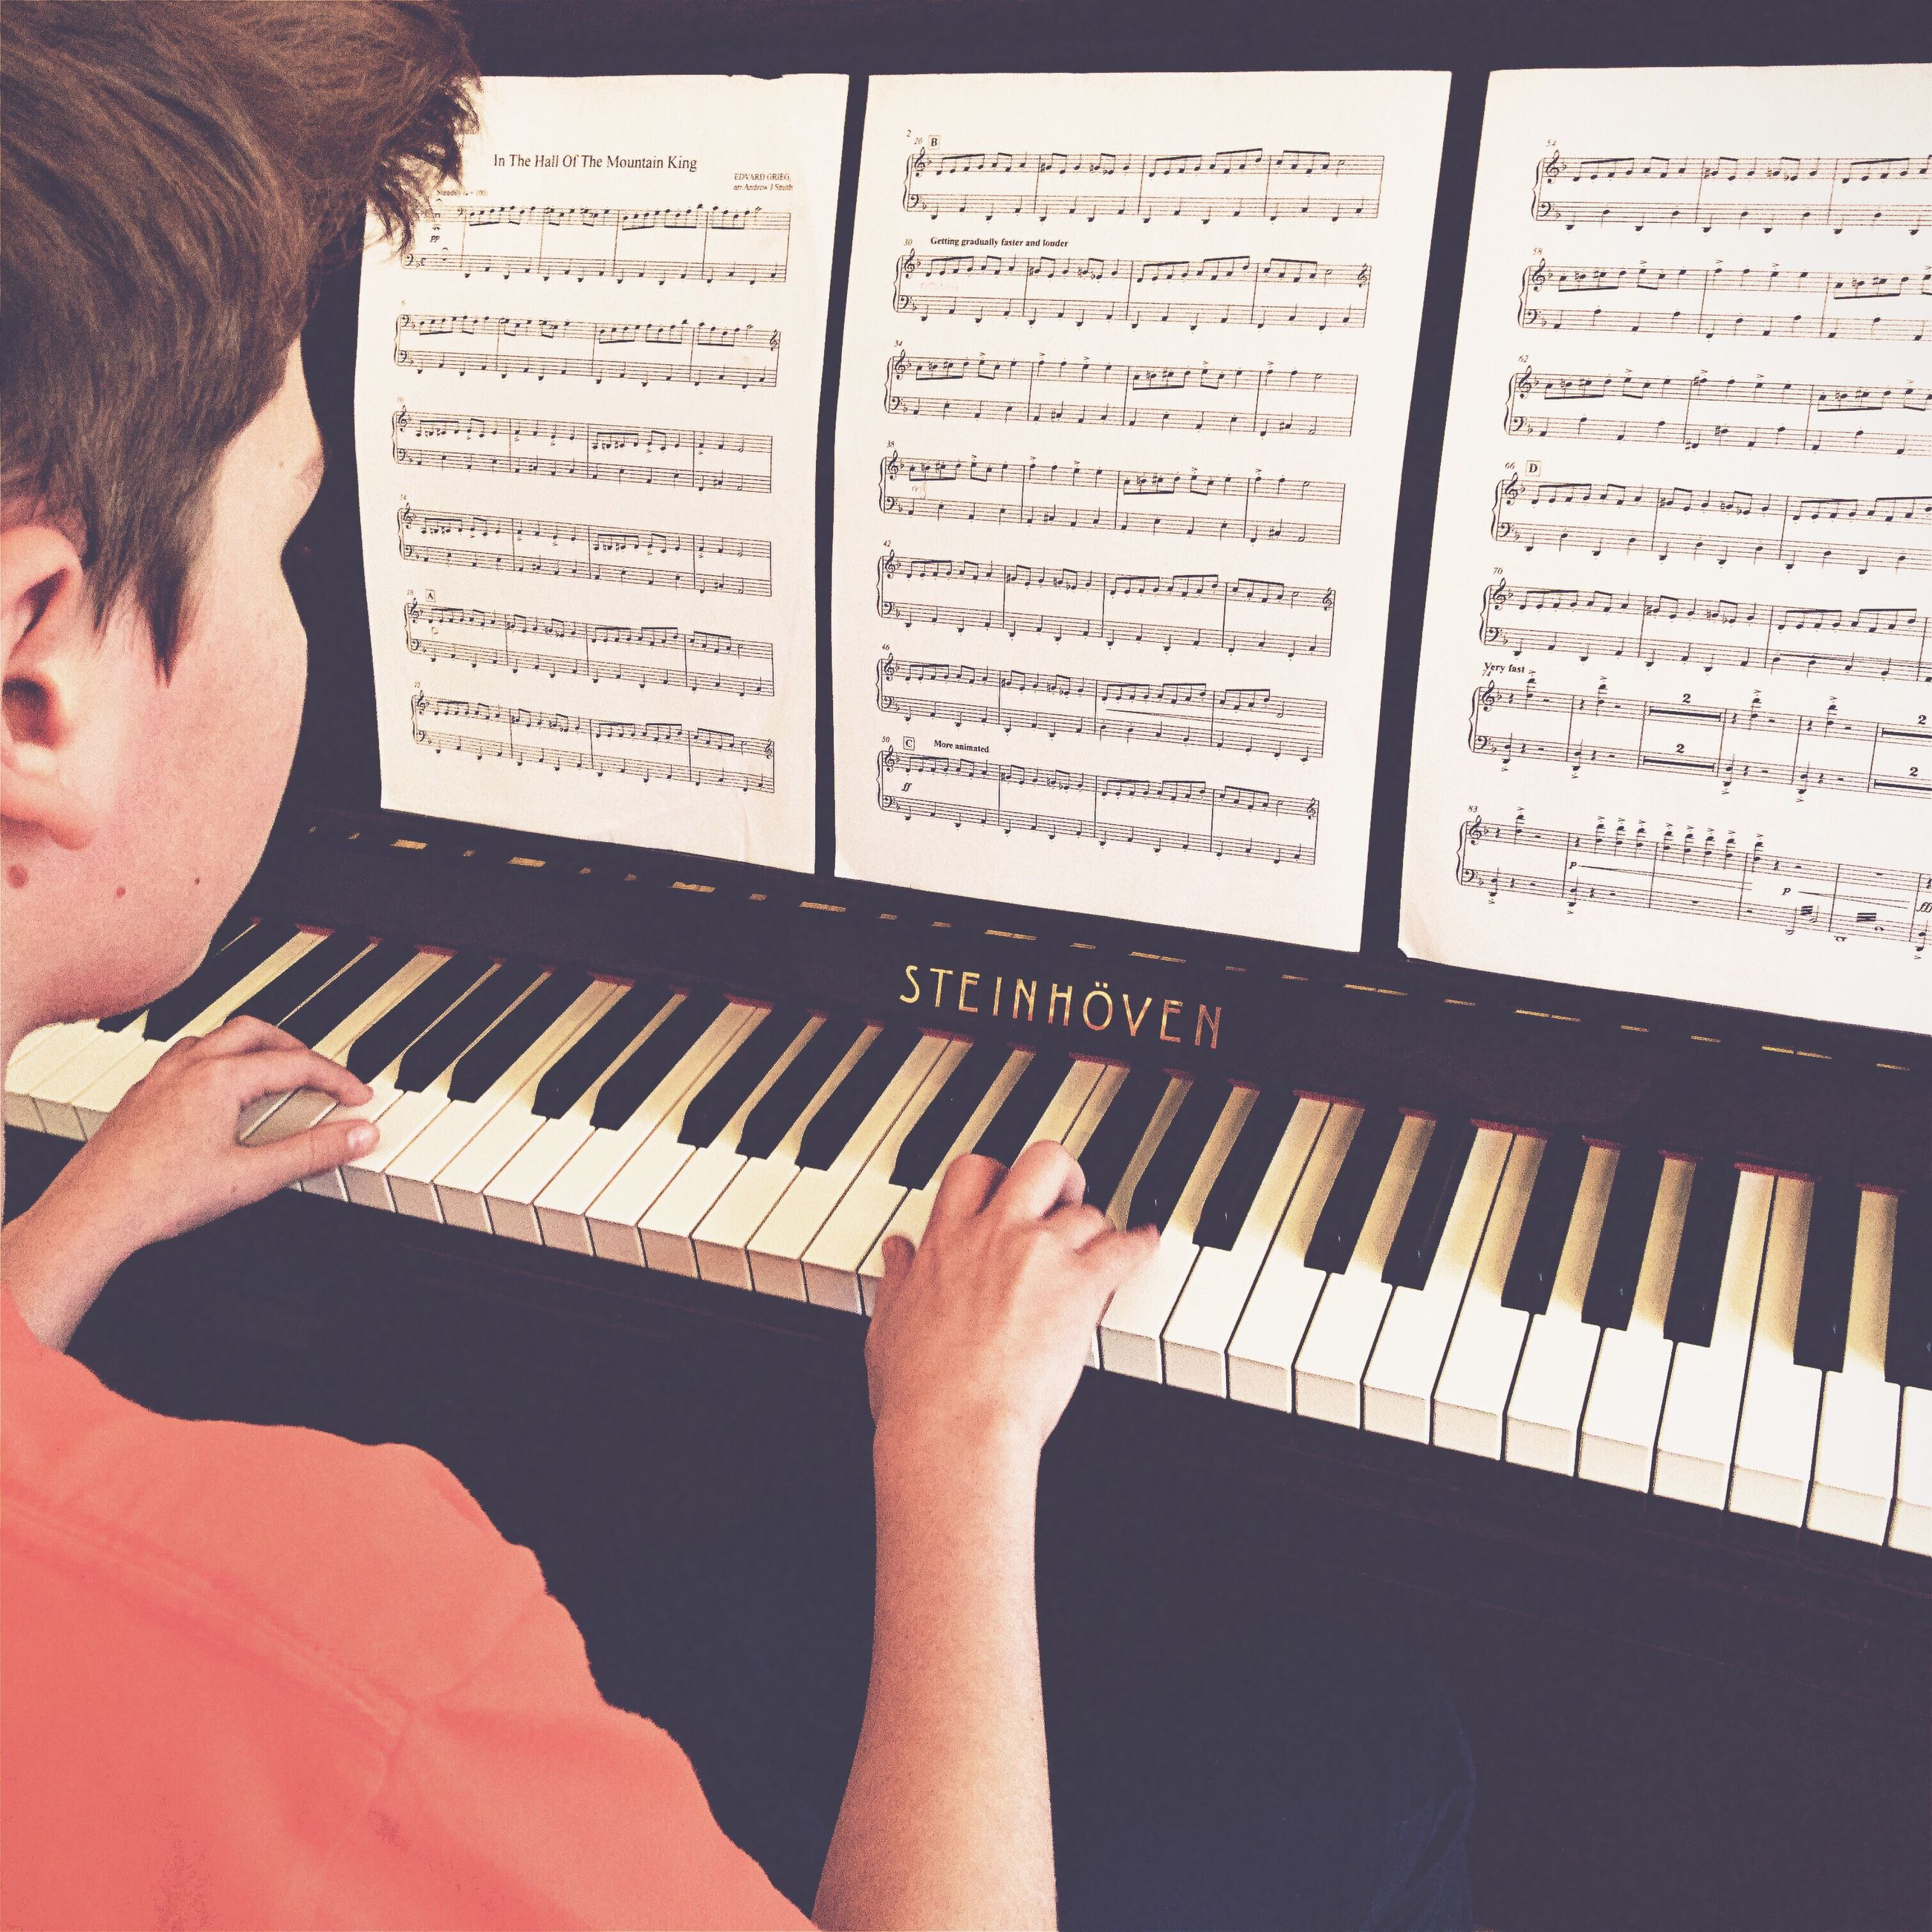 music, human body part, human hand, musical instrument, arts culture and entertainment, piano, practicing, playing, adult, one person, people, musician, classical music, day, adults only, indoors, performing arts event, young adult